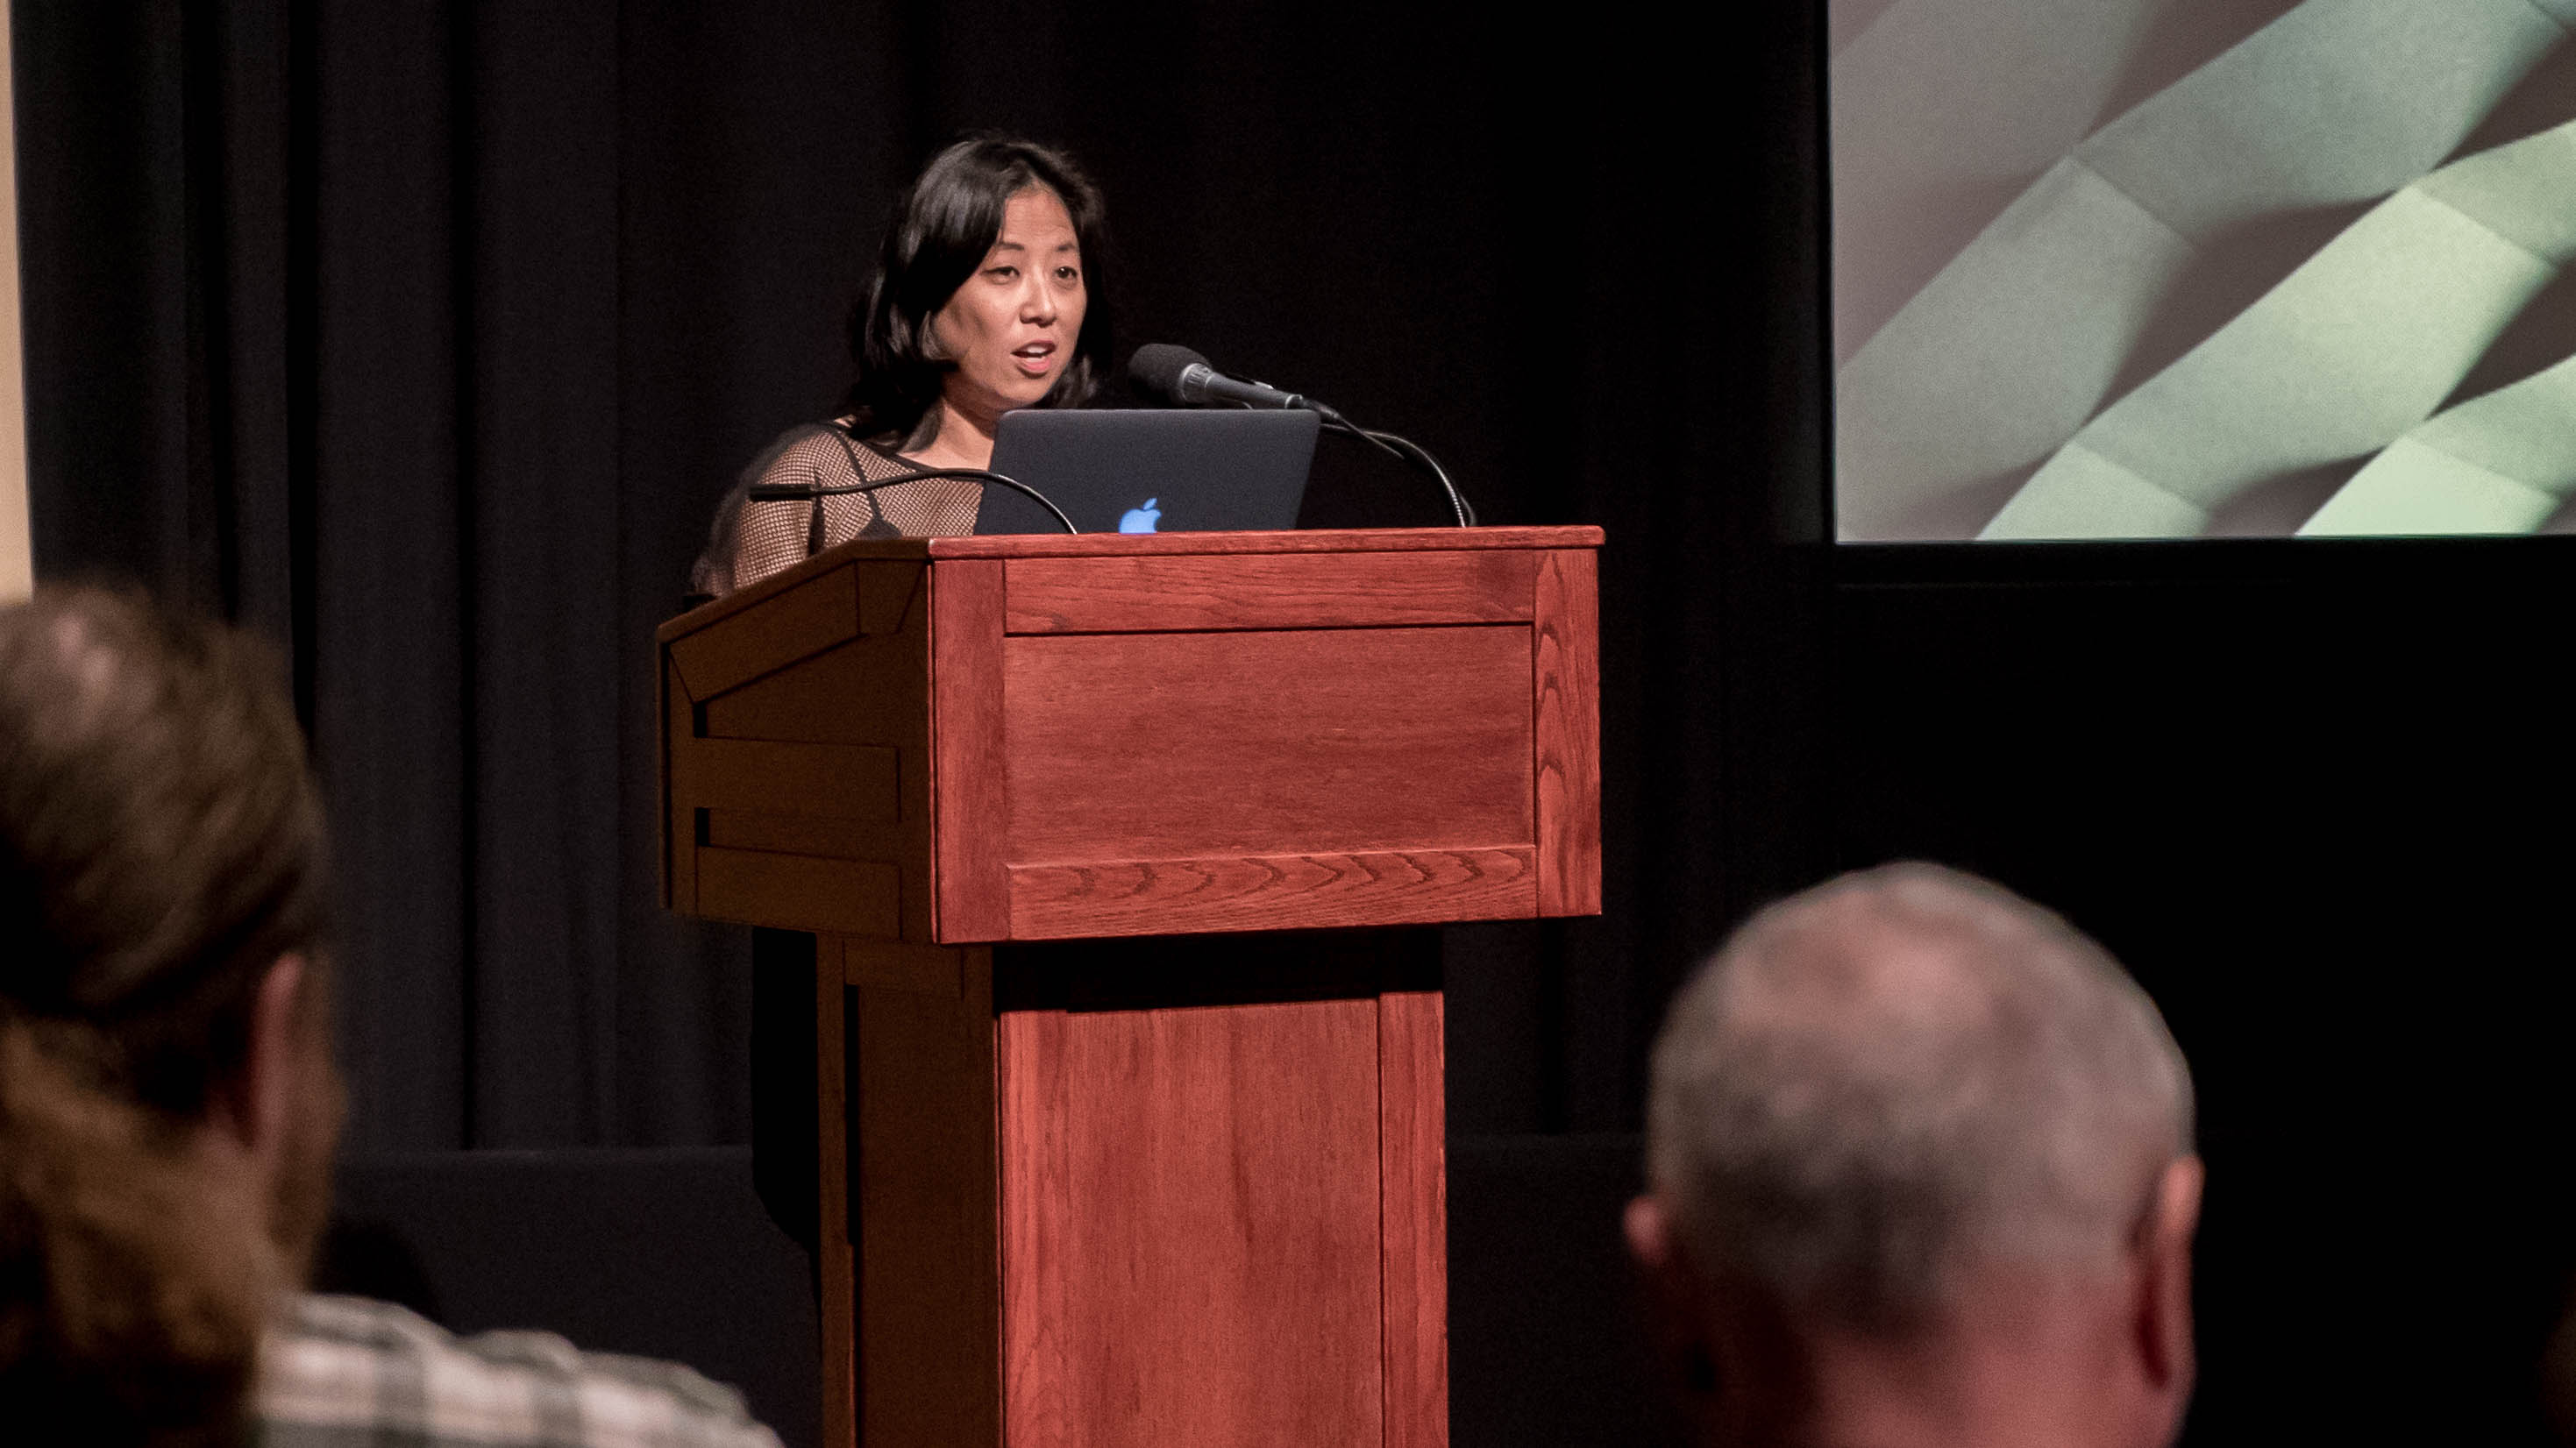 Grace Lee delivering her keynote at Getting Real '16. Photo by Mark Hayes.